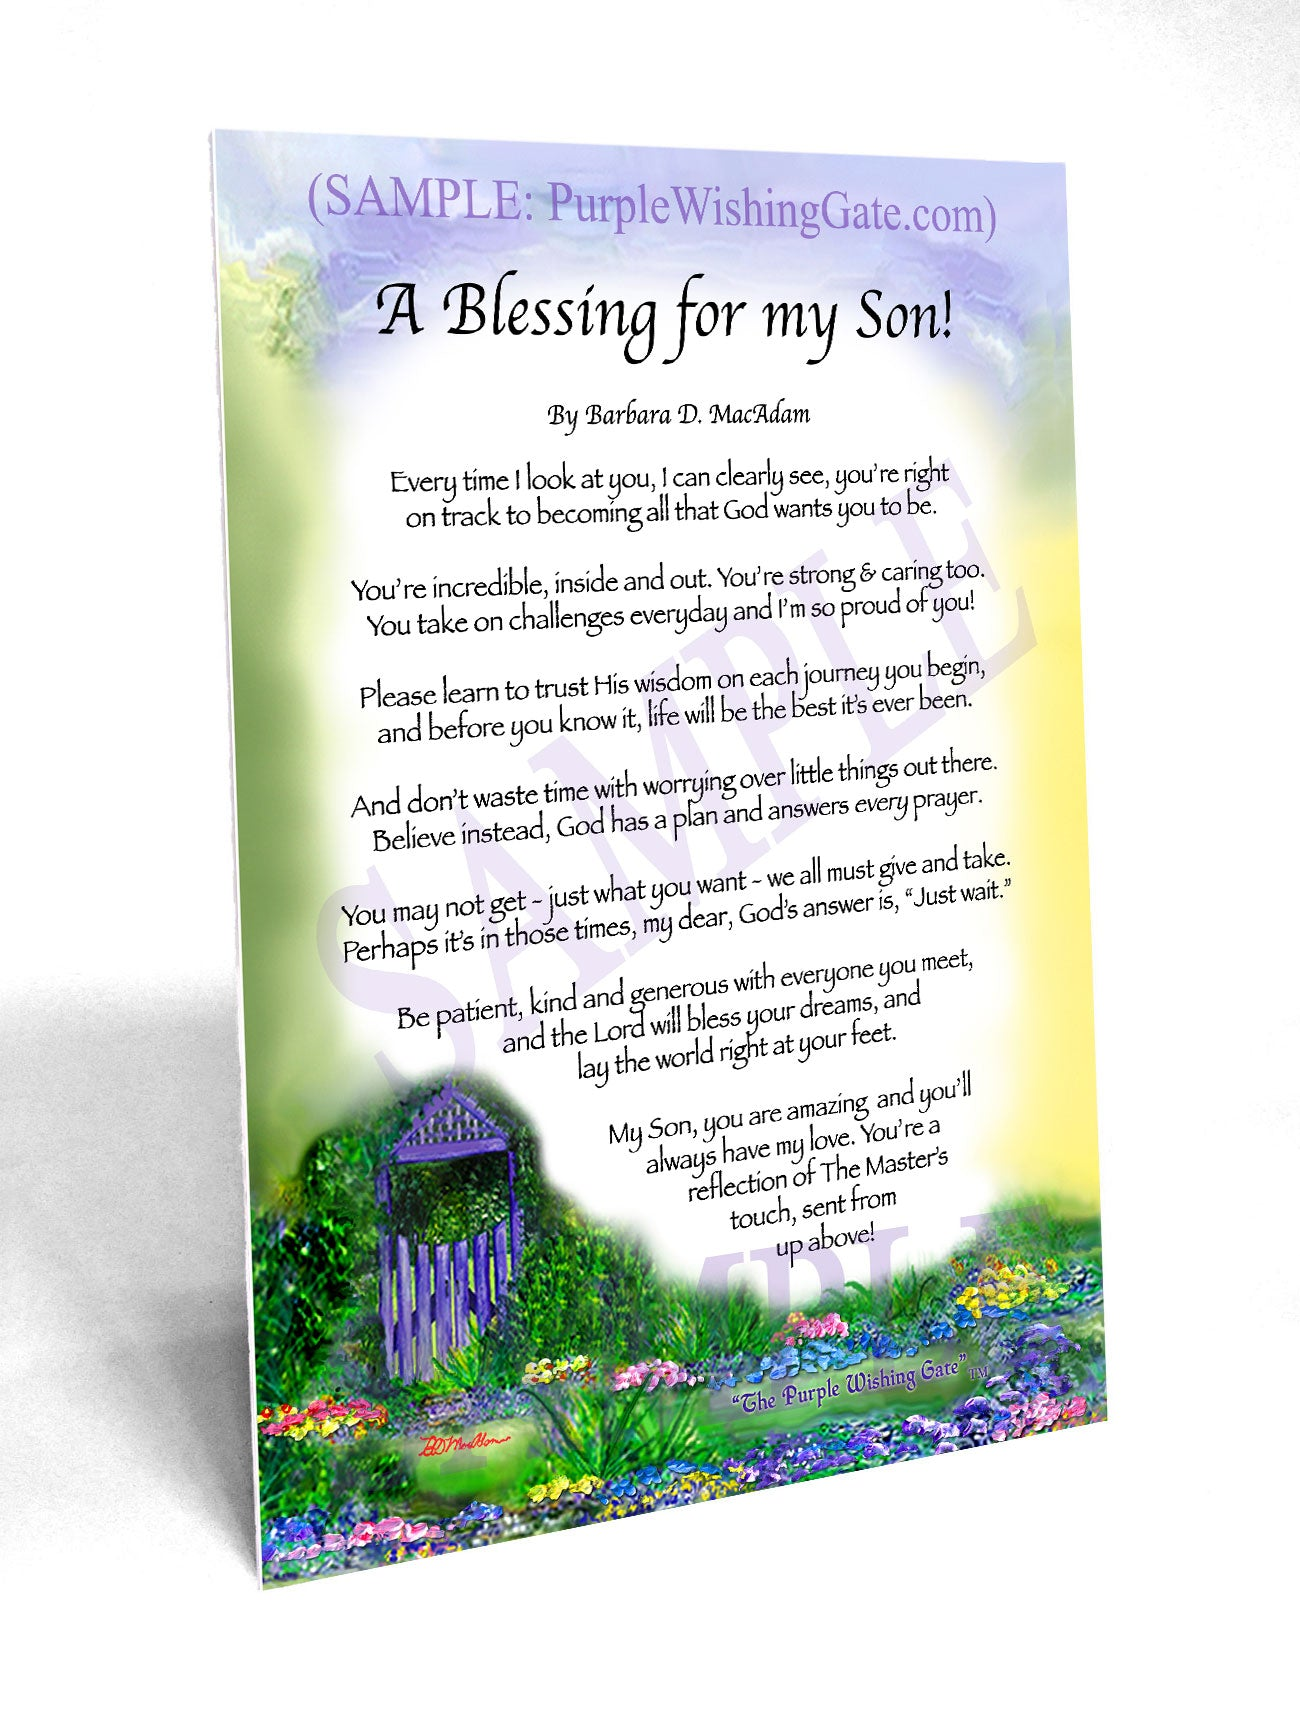 A Blessing for my Son! (child-adult) - Gifts for Son - PurpleWishingGate.com